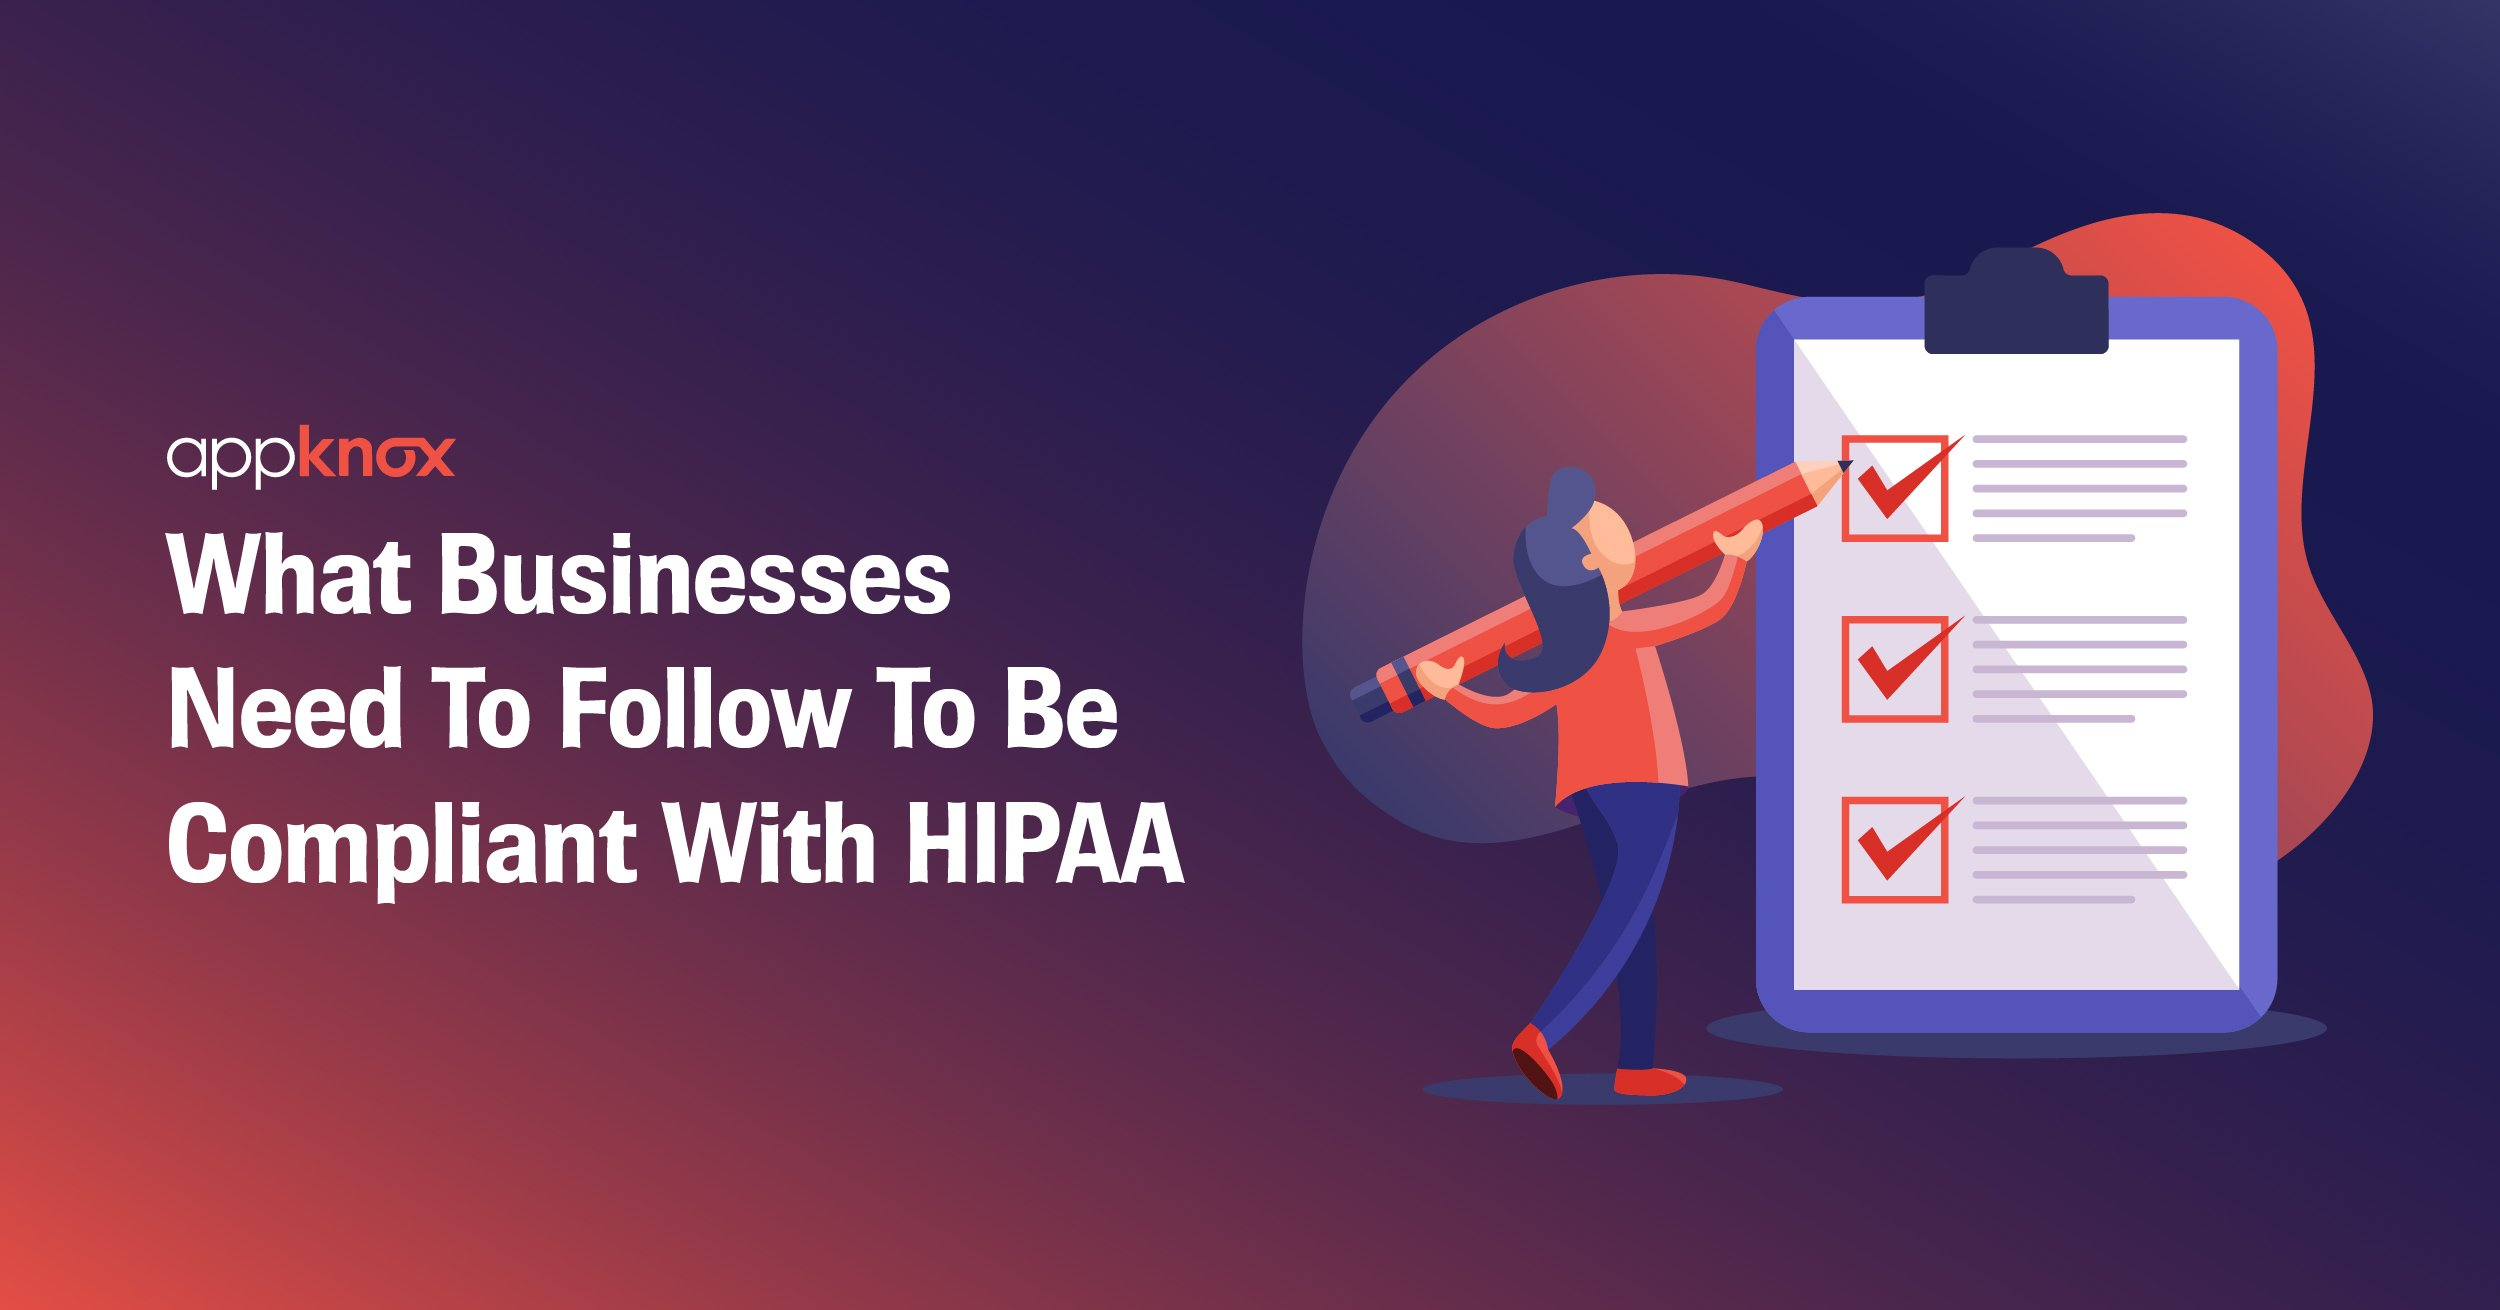 What Businesses Need To Follow To Be Compliant With HIPAA